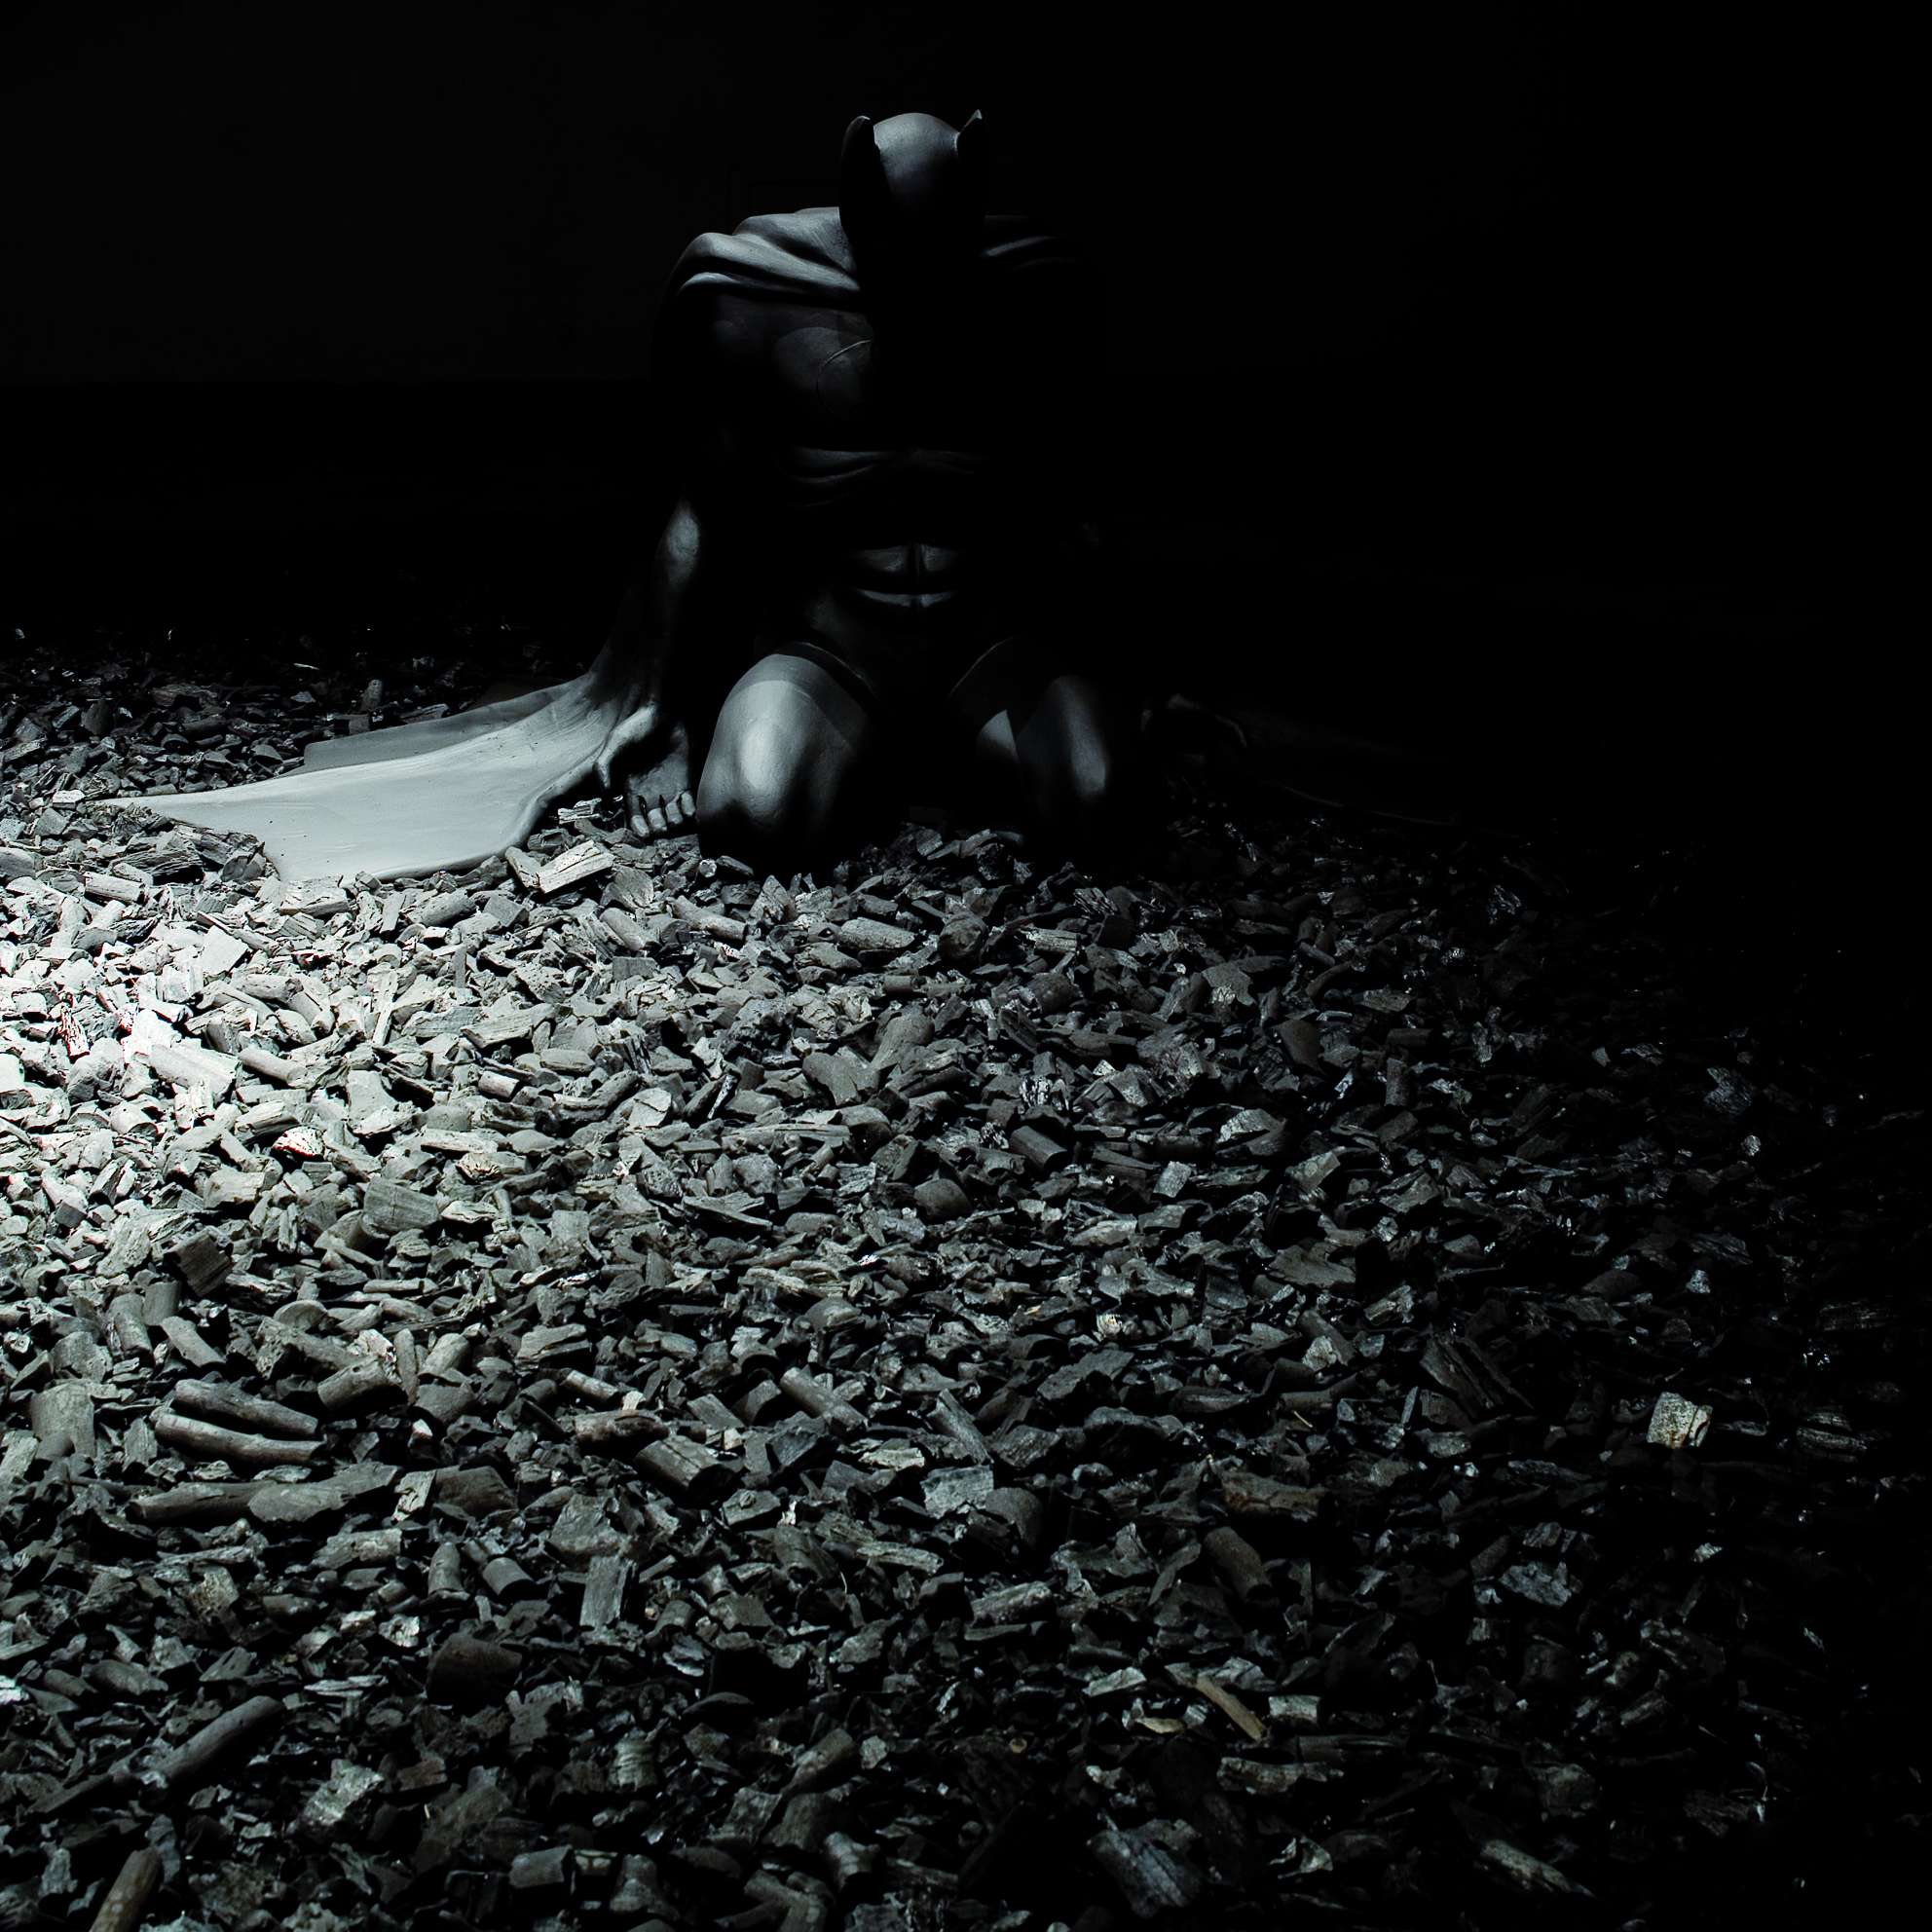 BACK IN BLACK , 2005 . Polystyrene, resin and charcoal, sculpture : 120x200x140 cm, charcoal : variable dimensions. Photo: Massimo Tomasini